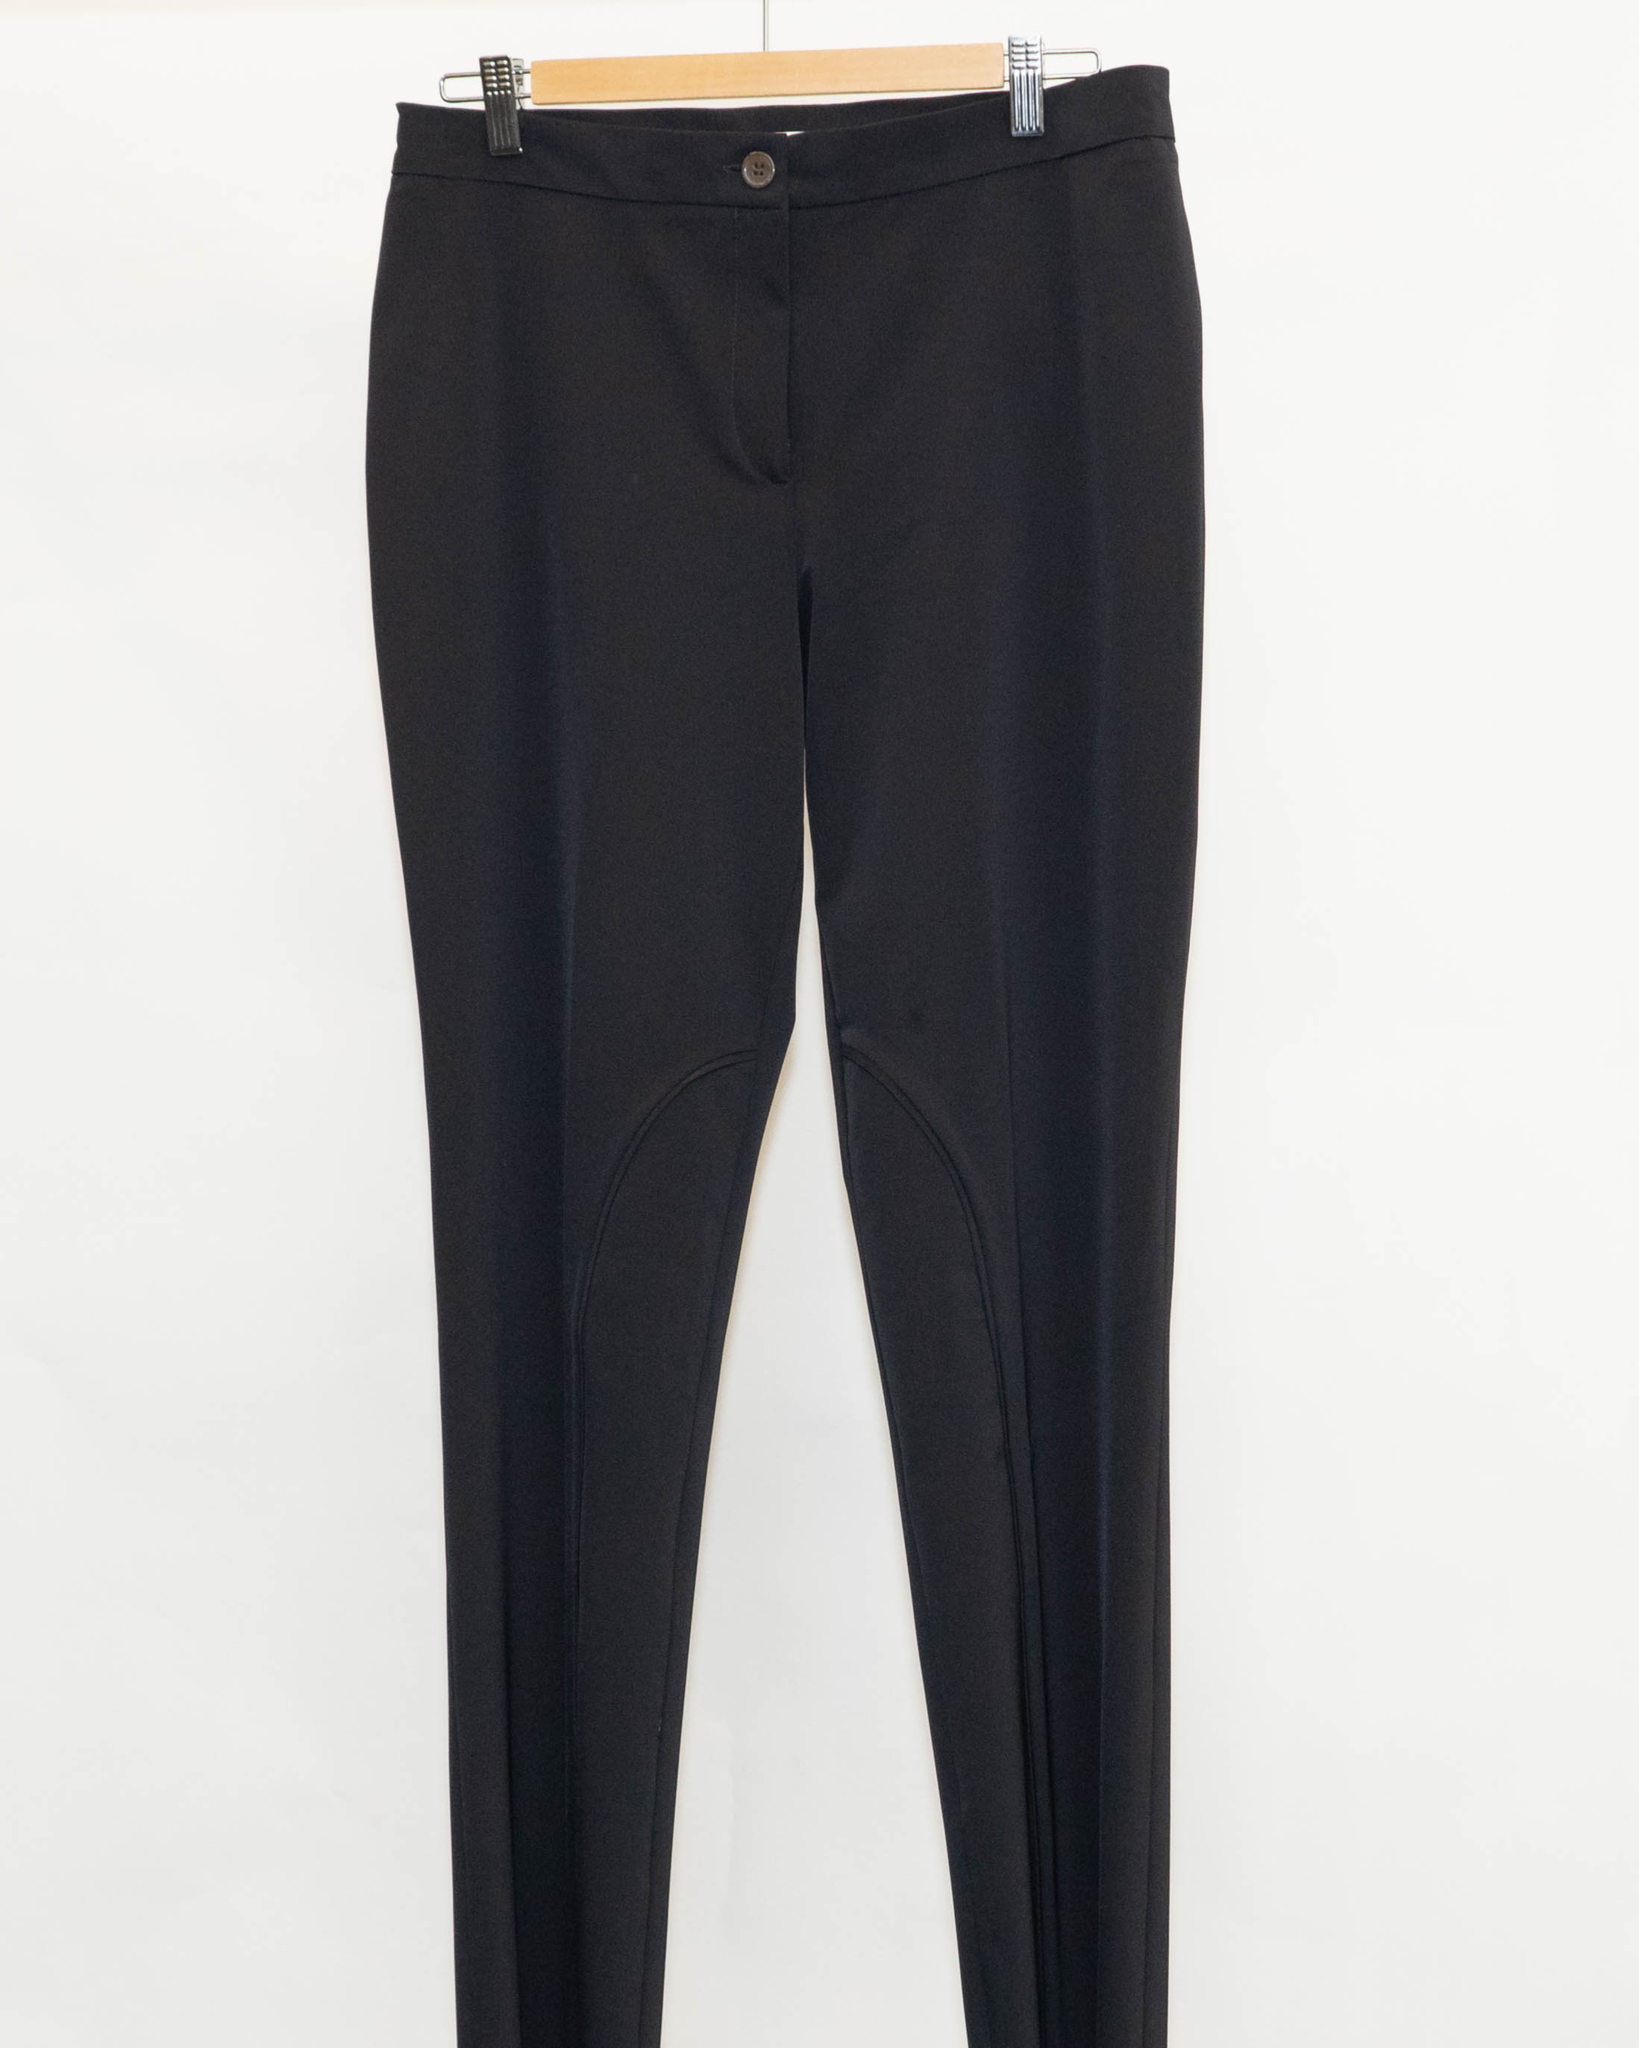 LIZA Trousers in Polyester-3